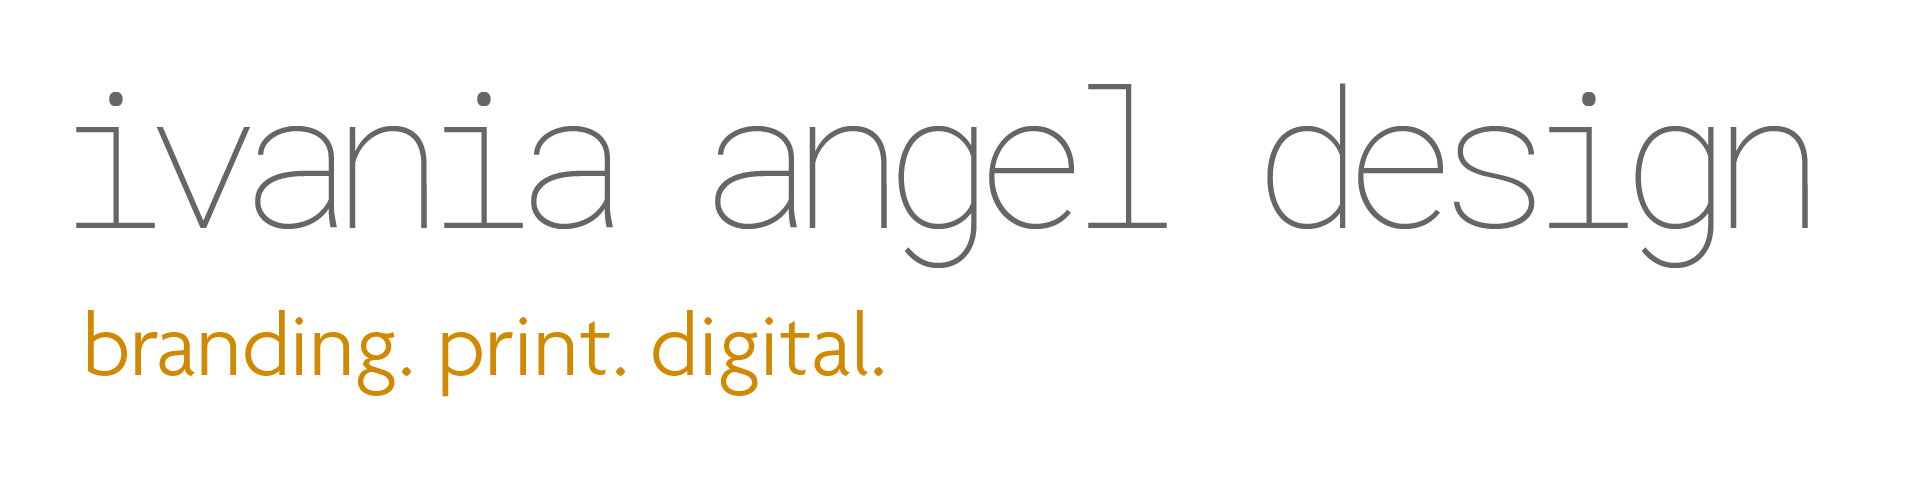 Ivania Angel Design. Branding. Print. Digital.